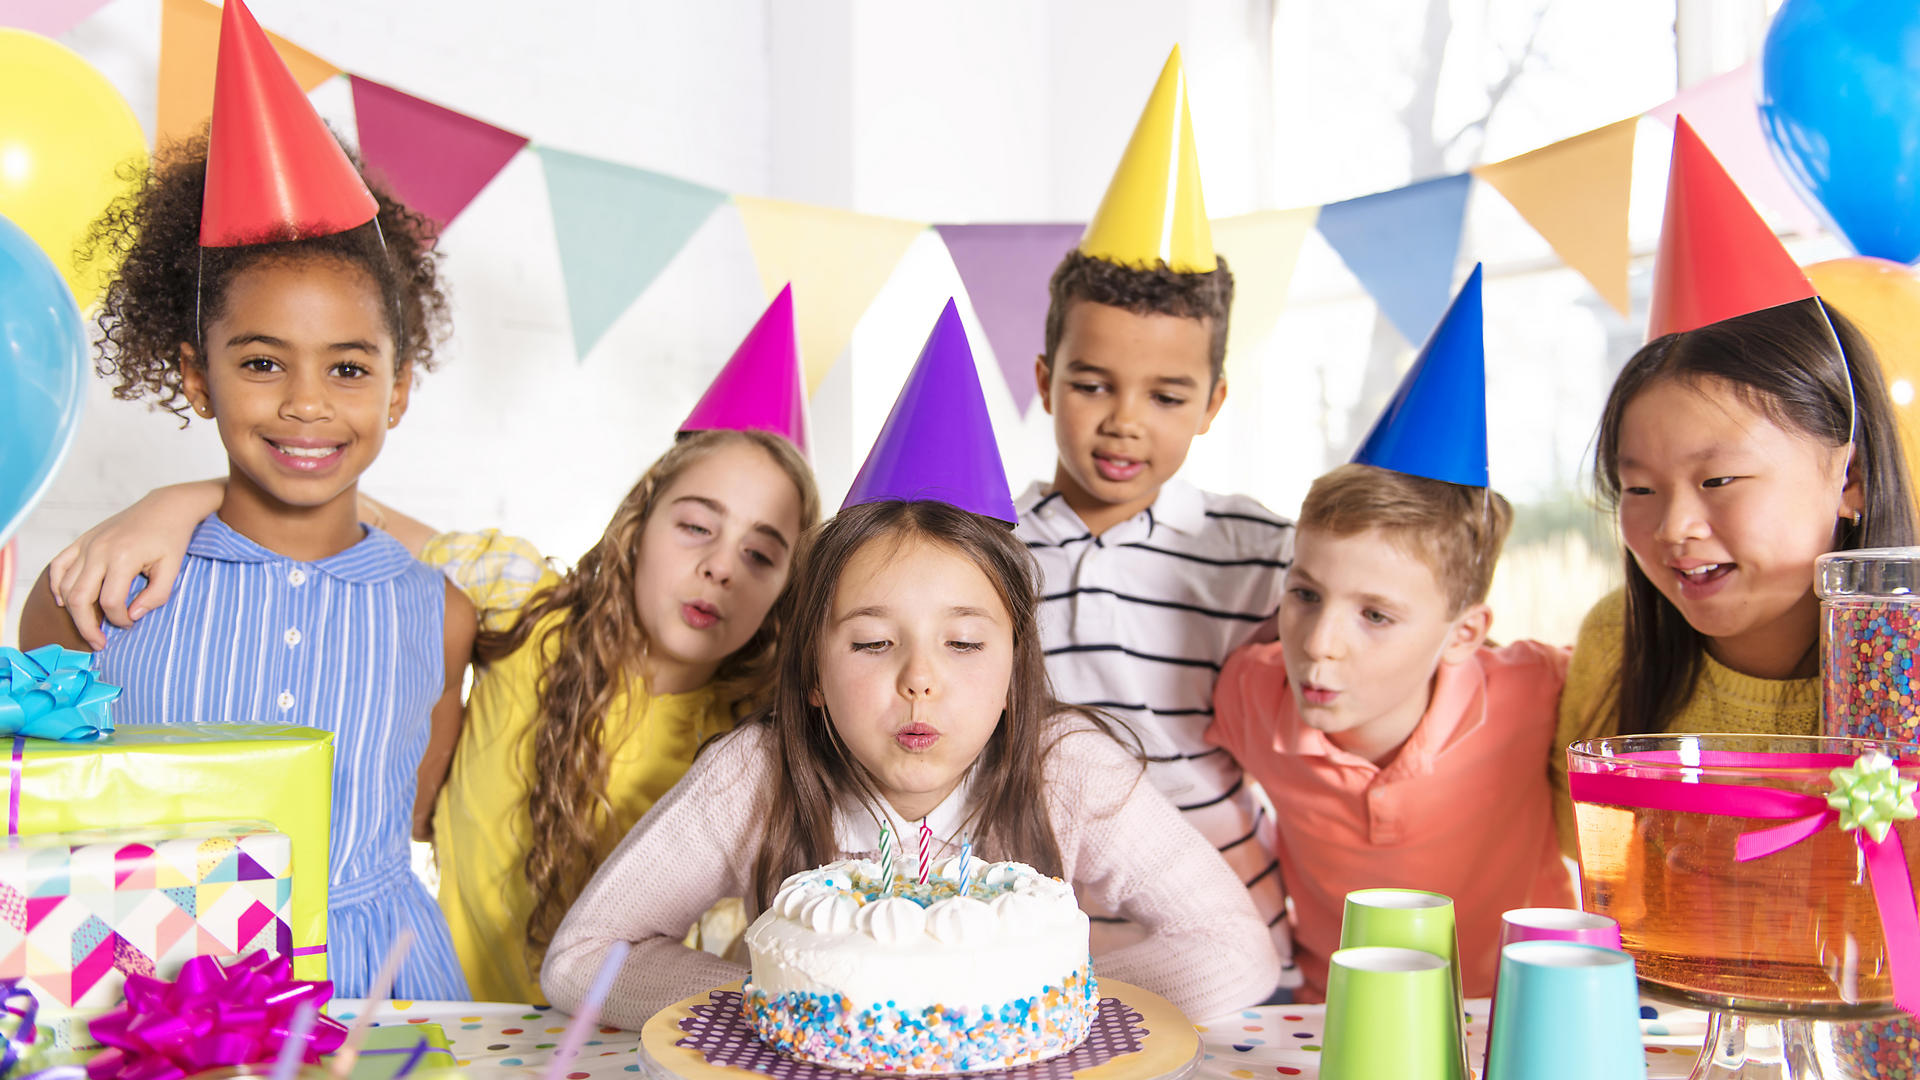 A group of children at birthday party at home